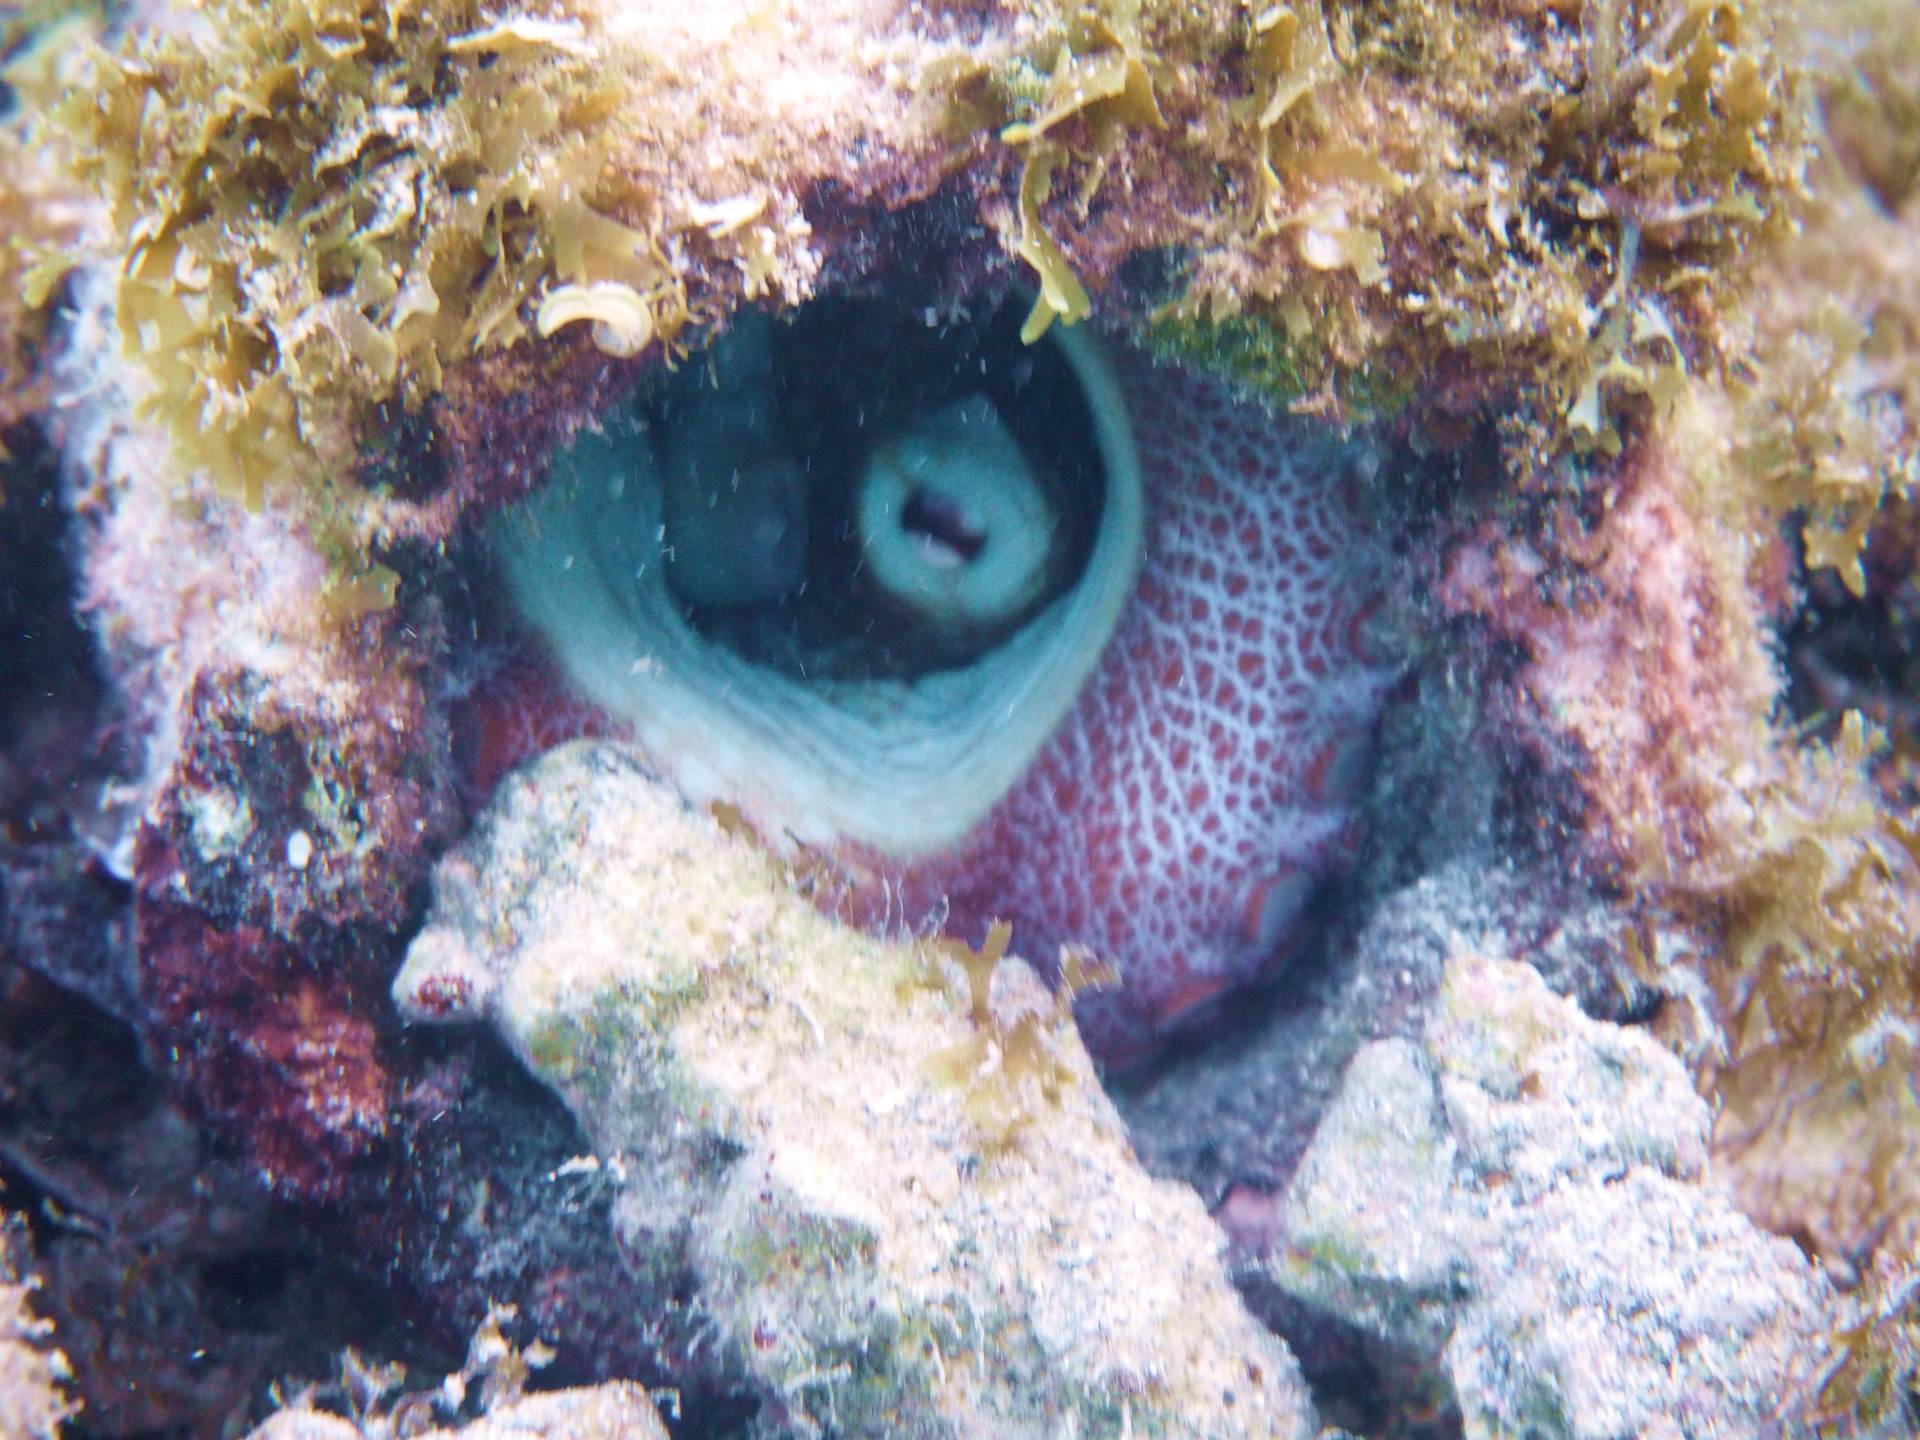 In a Pipe at the end of LPDC dock, this octopus hung around for about 3 weeks. spitting sand occasionally. We left well alone.